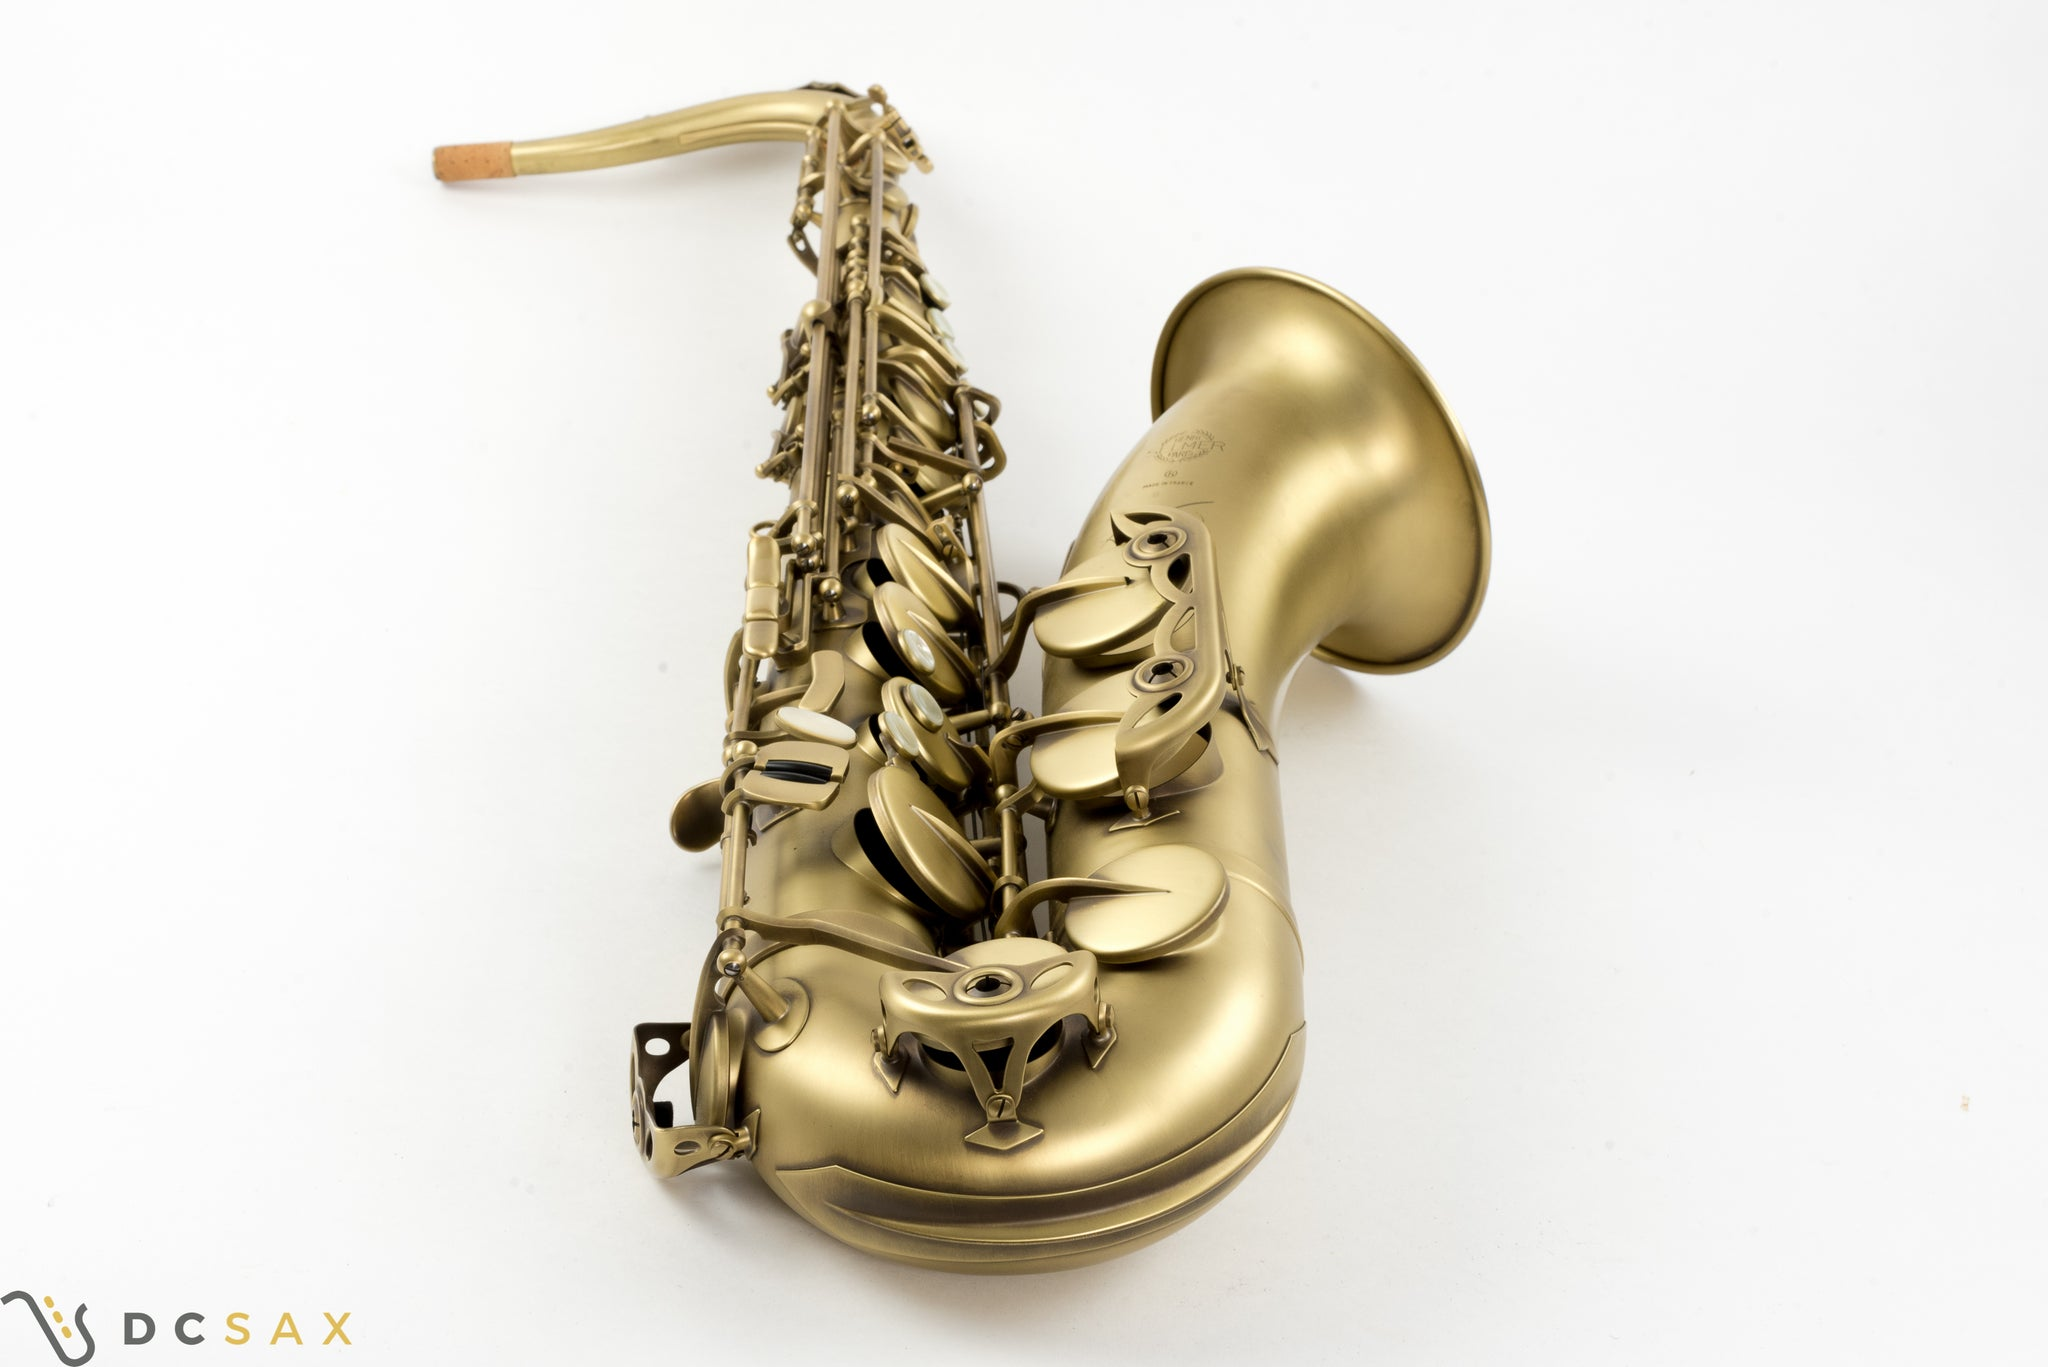 Selmer Reference 54 Tenor Saxophone, Matte Finish, Video